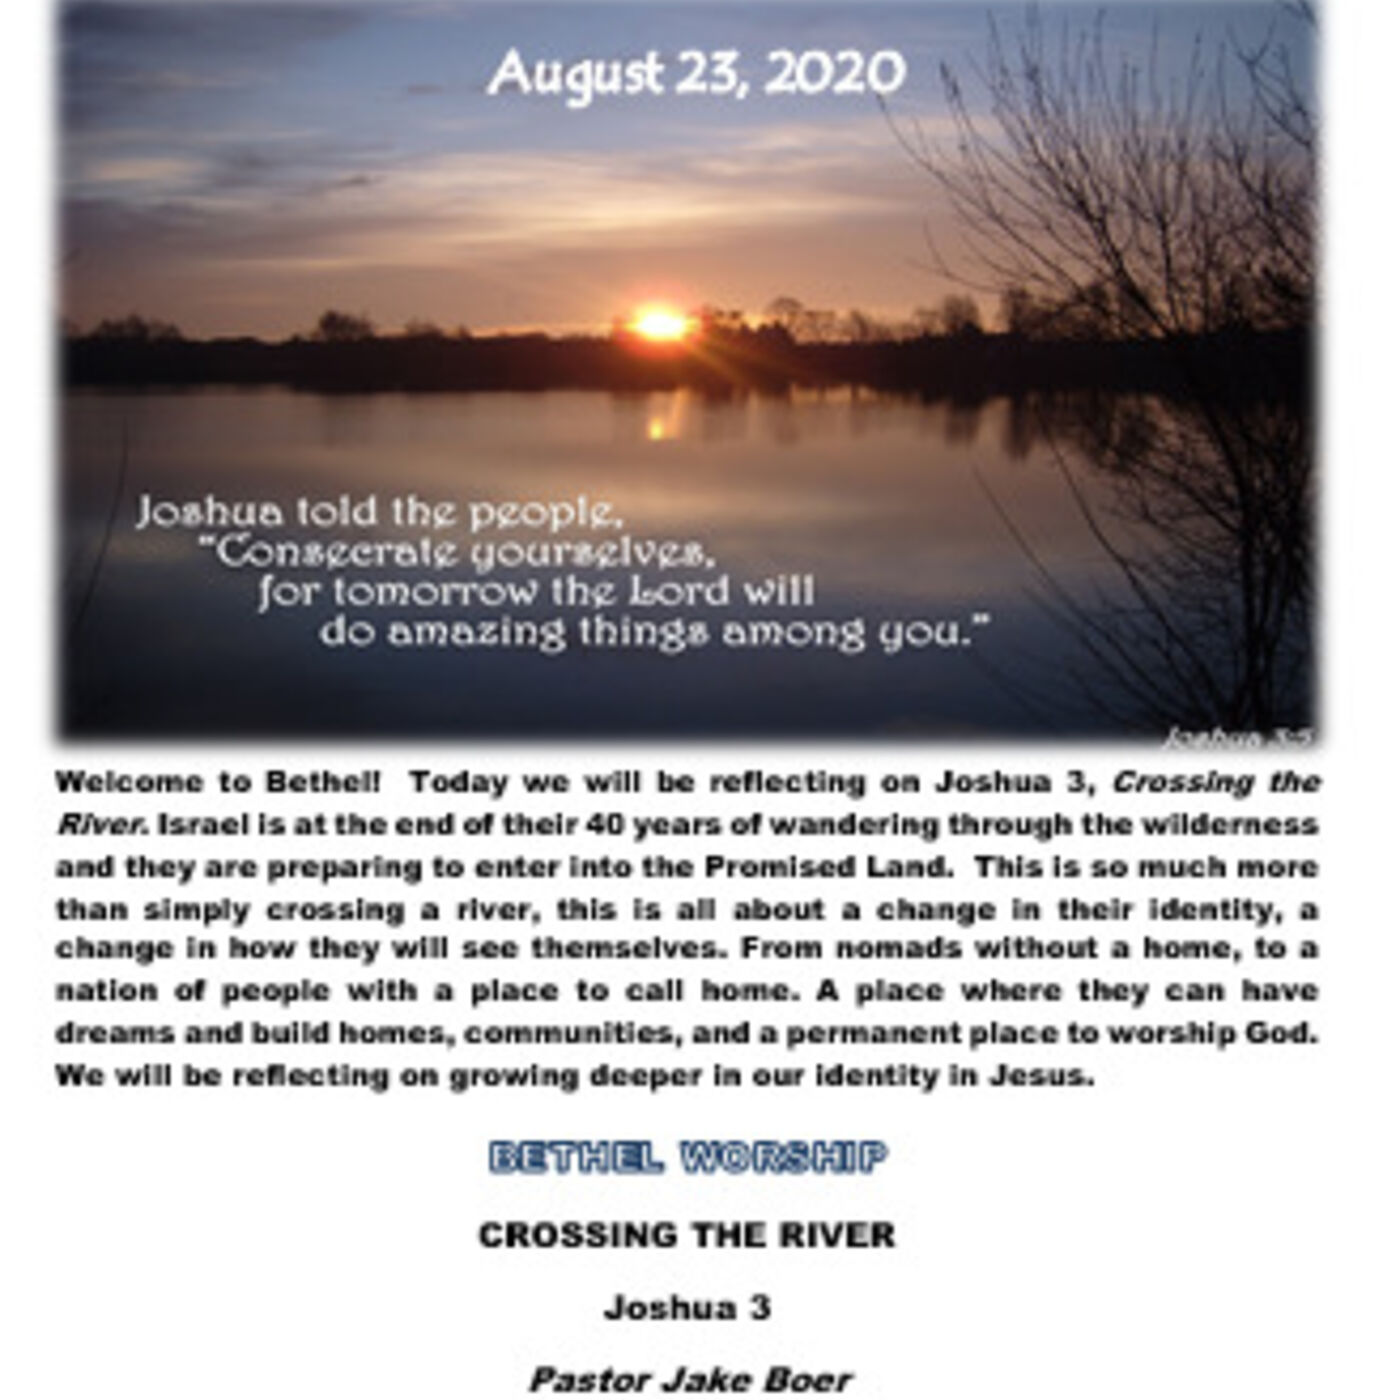 August 23/20  CROSSING THE RIVER